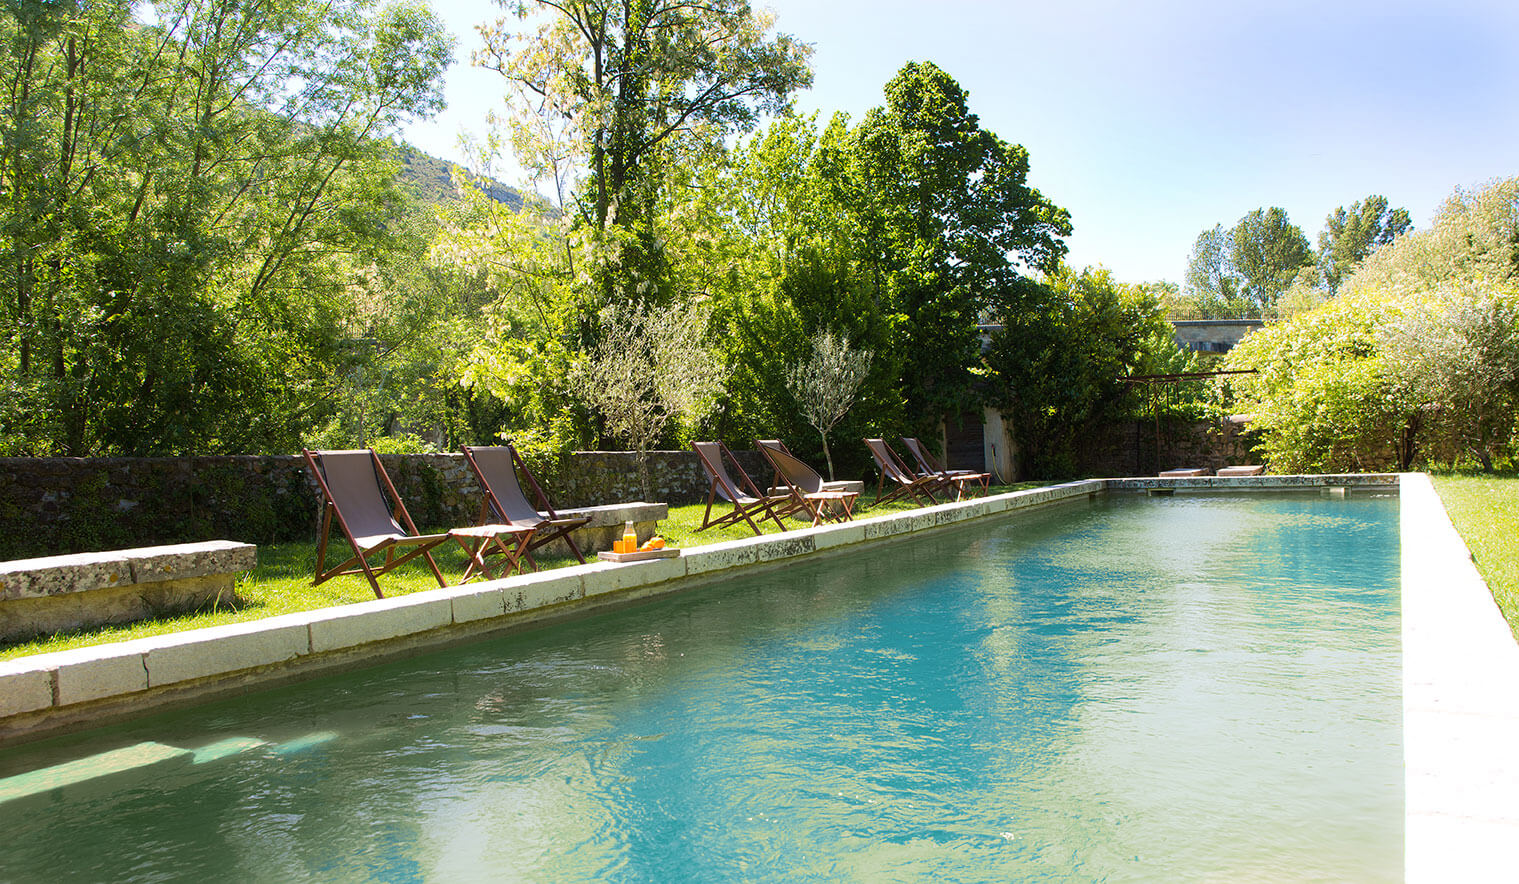 Beautiful Chateau Uzer, A Bu0026B And Flat Rental In Ardeche, France. Also Has Cabans